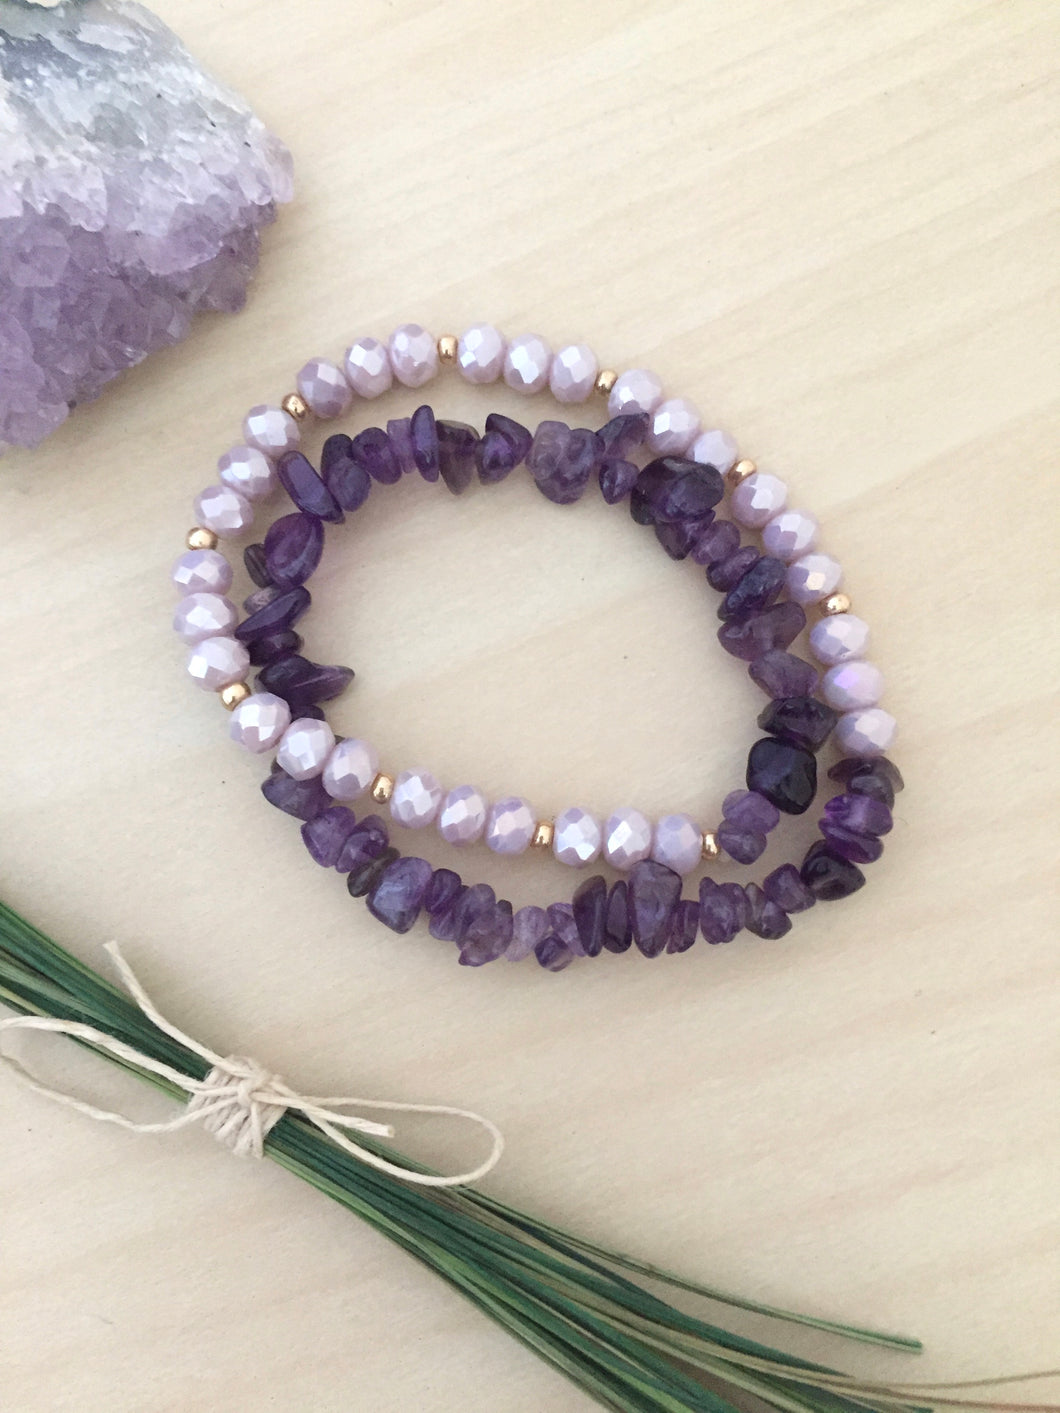 Amethyst Wrap Bracelet with Light Purple and Gold beads